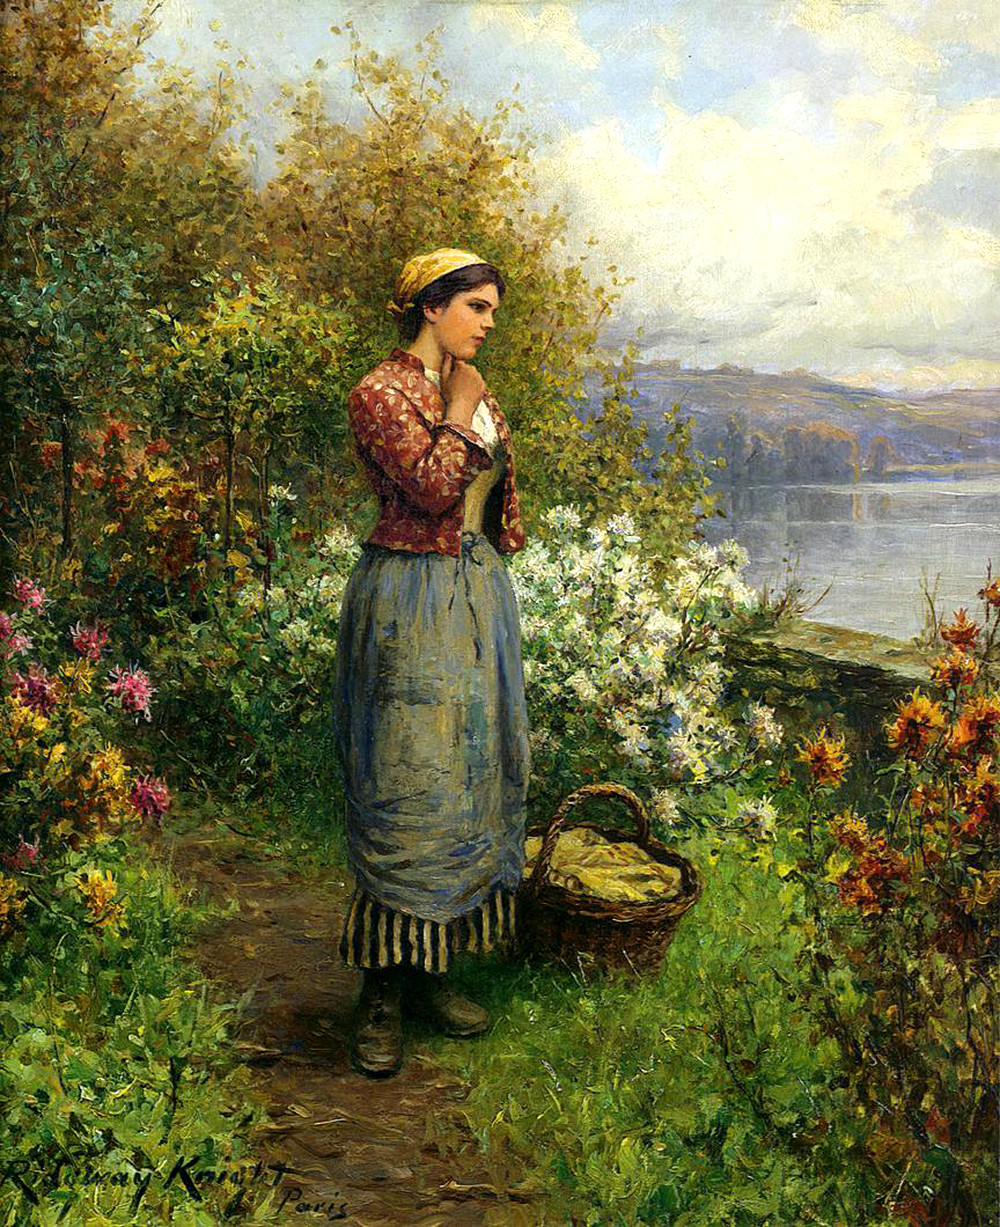 Julia on the Terrace by Daniel Ridgway Knight, 1909